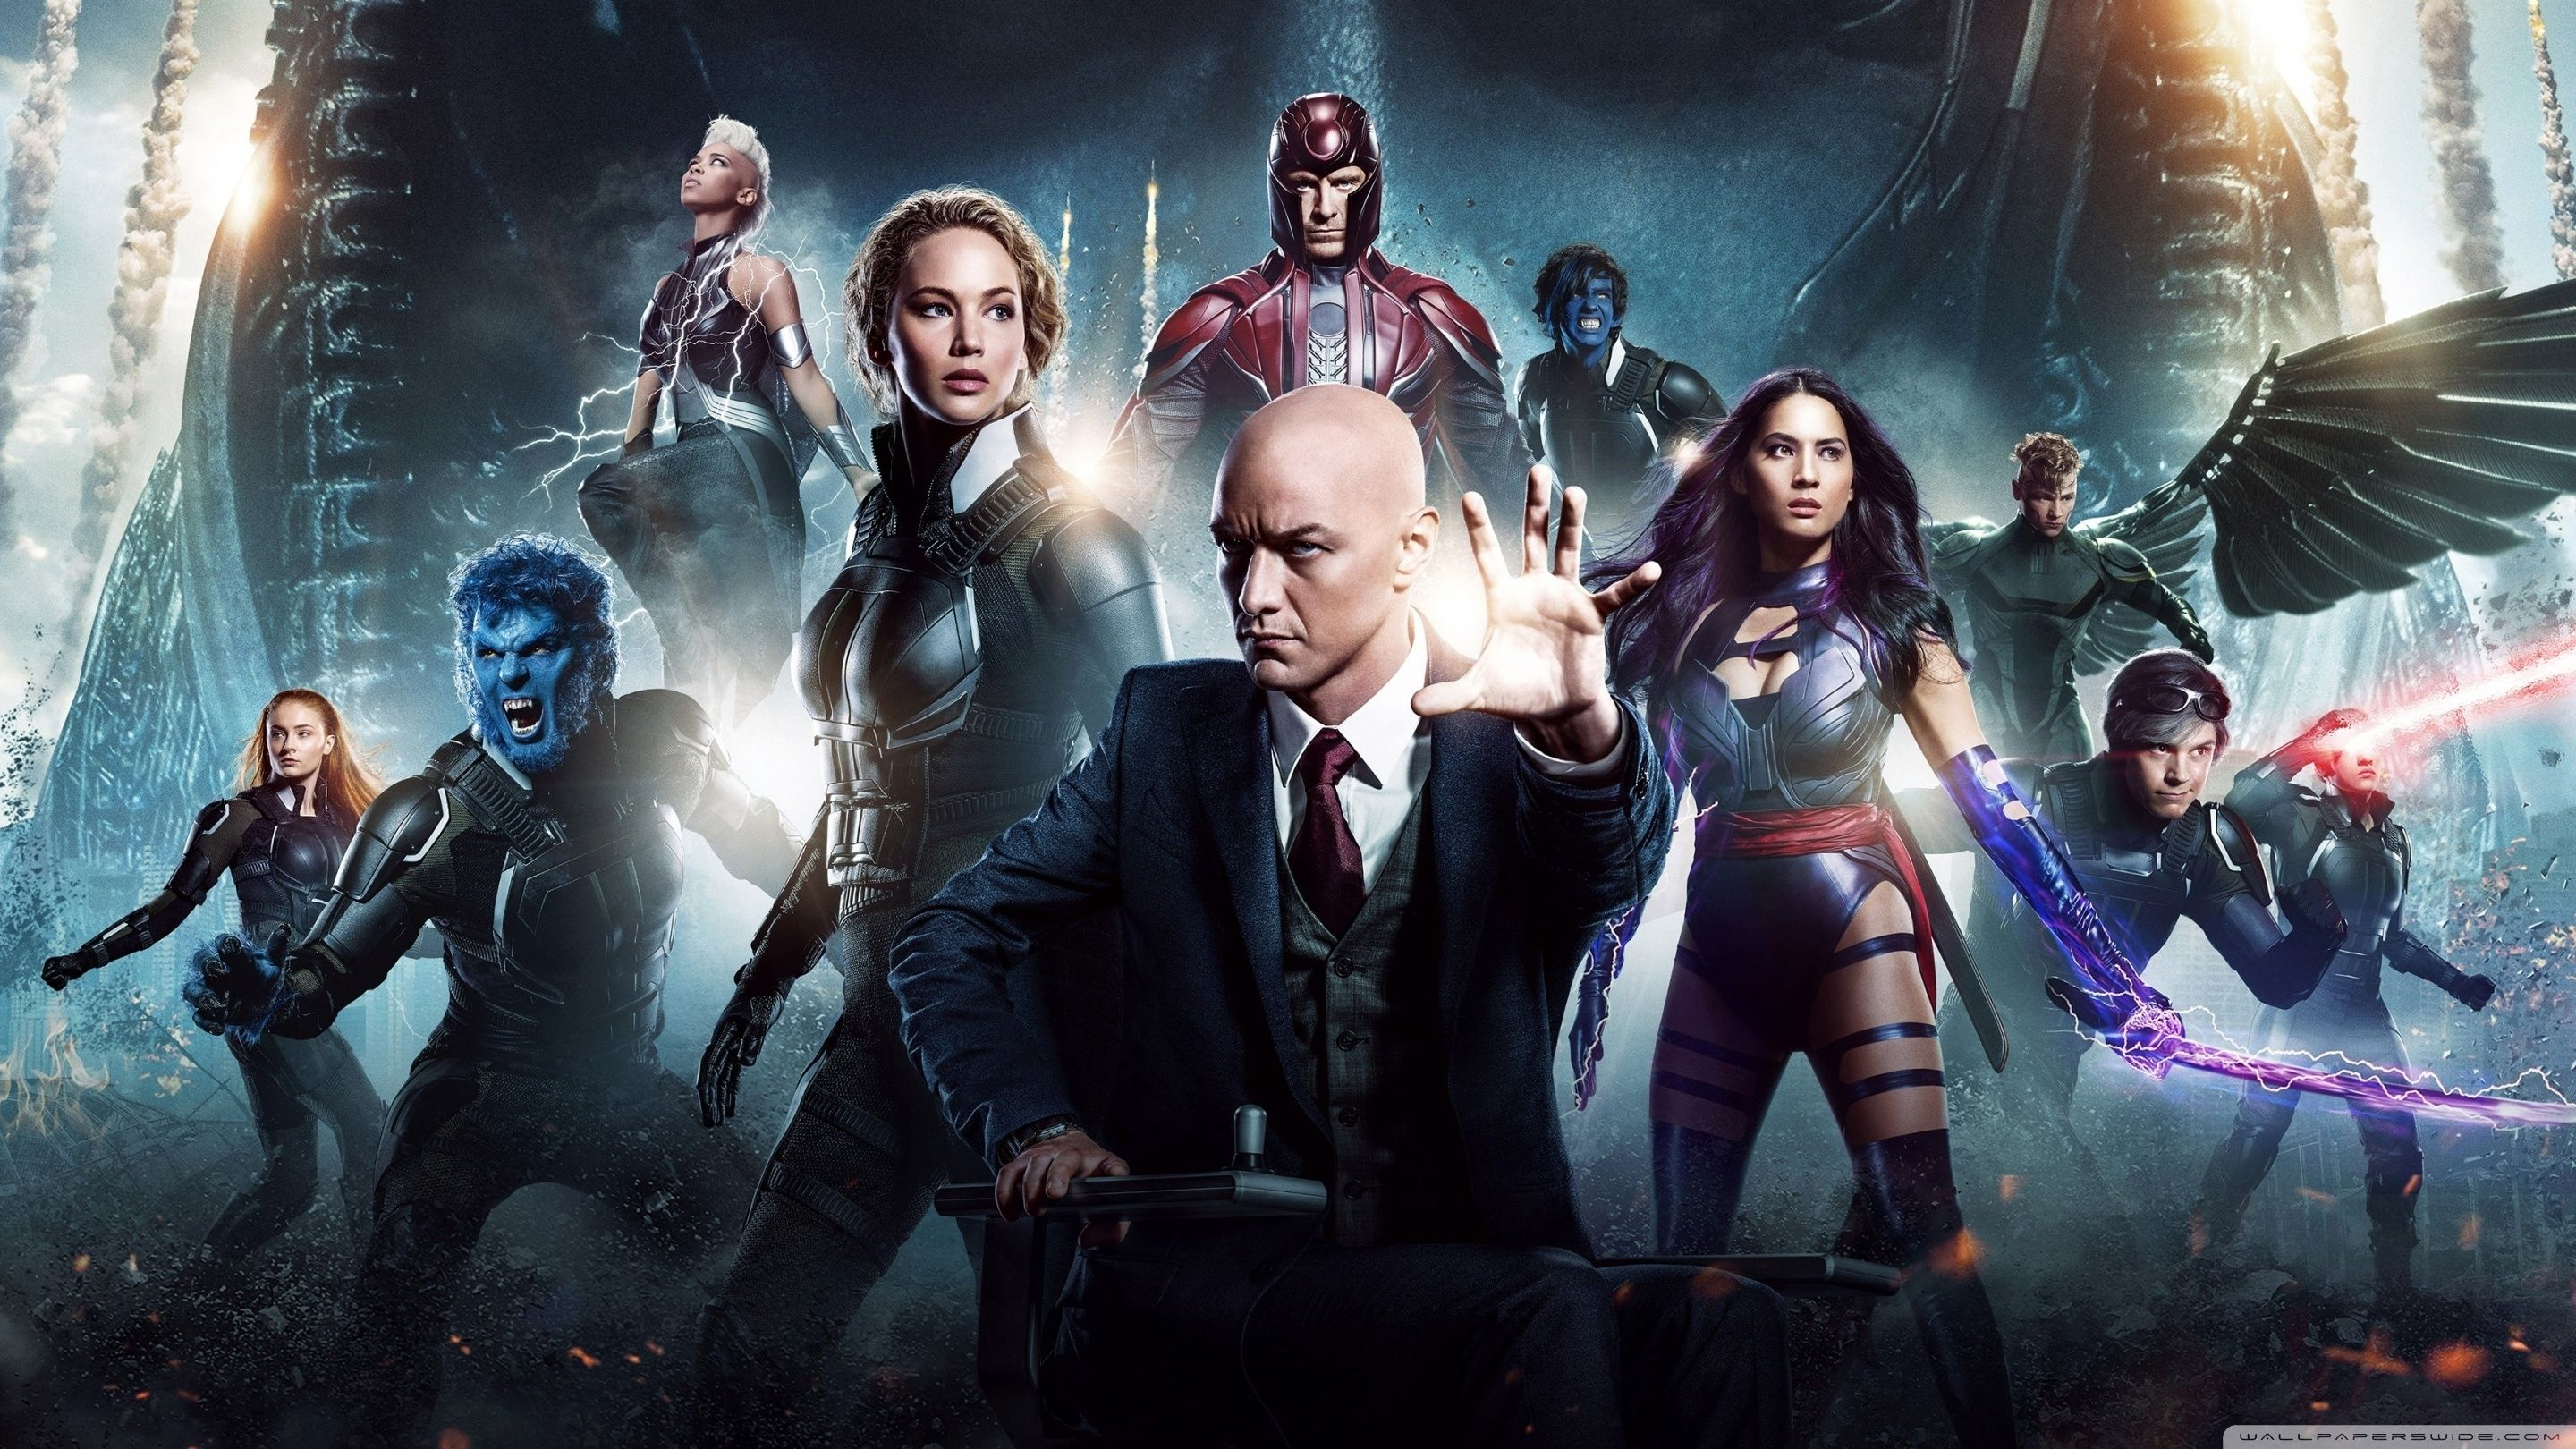 10 New X Men Apocalypse 4k Wallpaper Full Hd 1080p For Pc Background X Men Apocalypse X Men Apocalypse